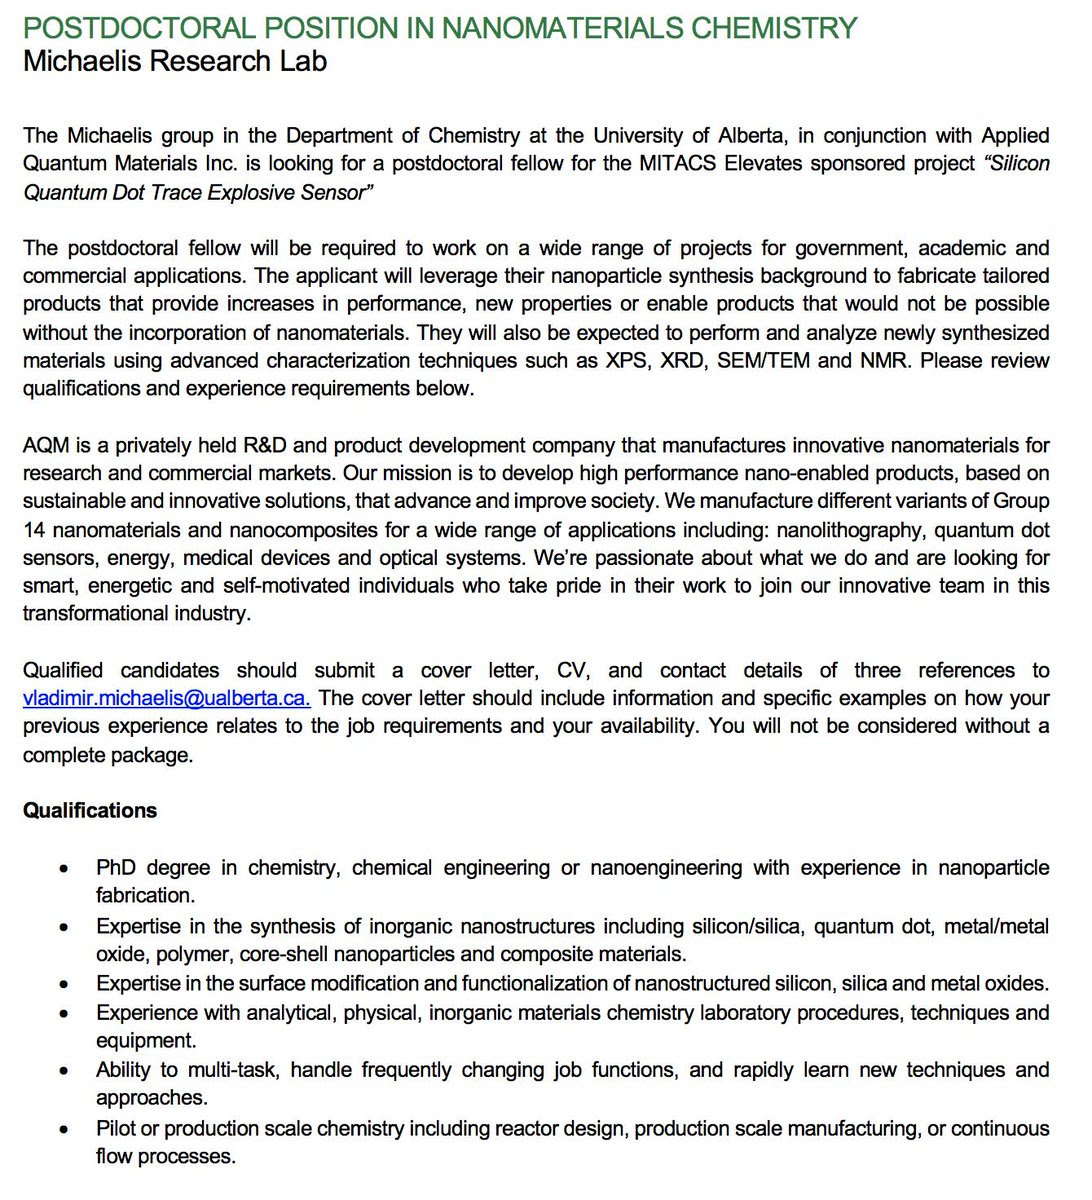 Chemistry Postdoc Cover Letter, Test Twitter Media Pdf Position Available In The Michaelis Lab At The University Of Alberta, Chemistry Postdoc Cover Letter